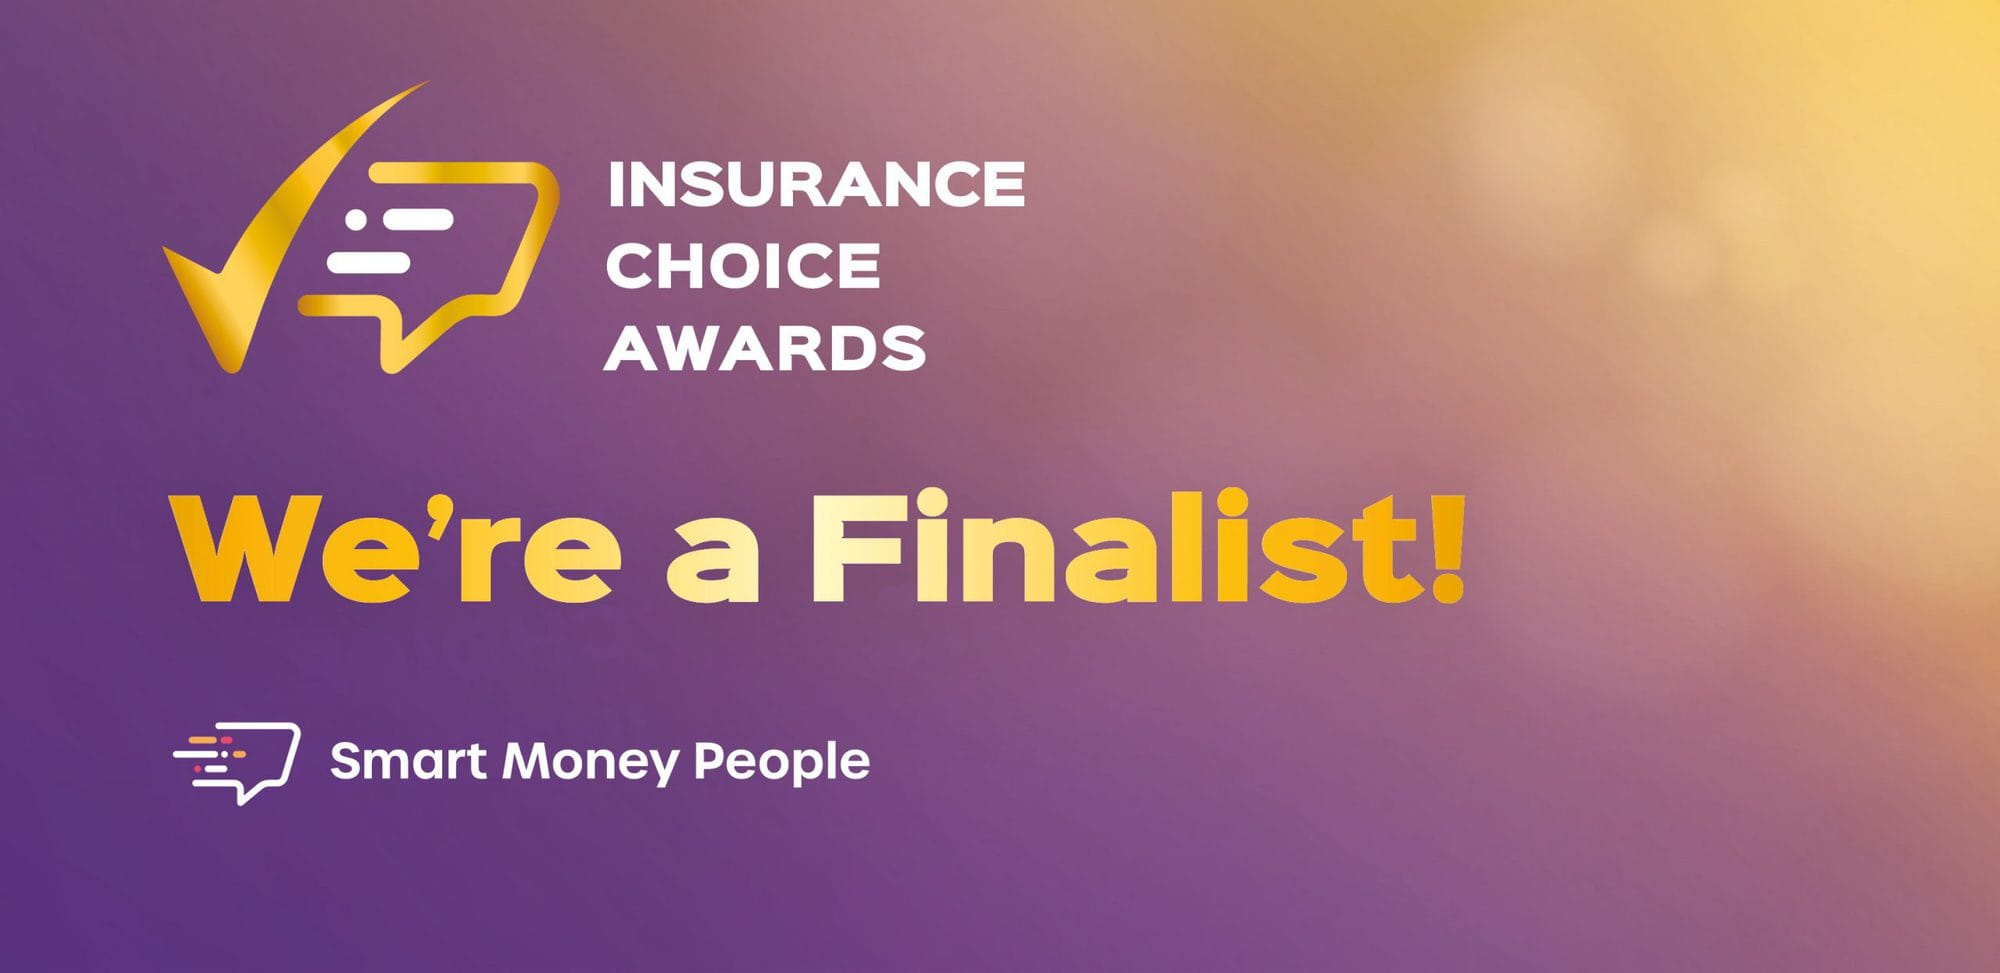 Best Pet Insurance Provider Finalist in the 2021 Insurance Choice Awards